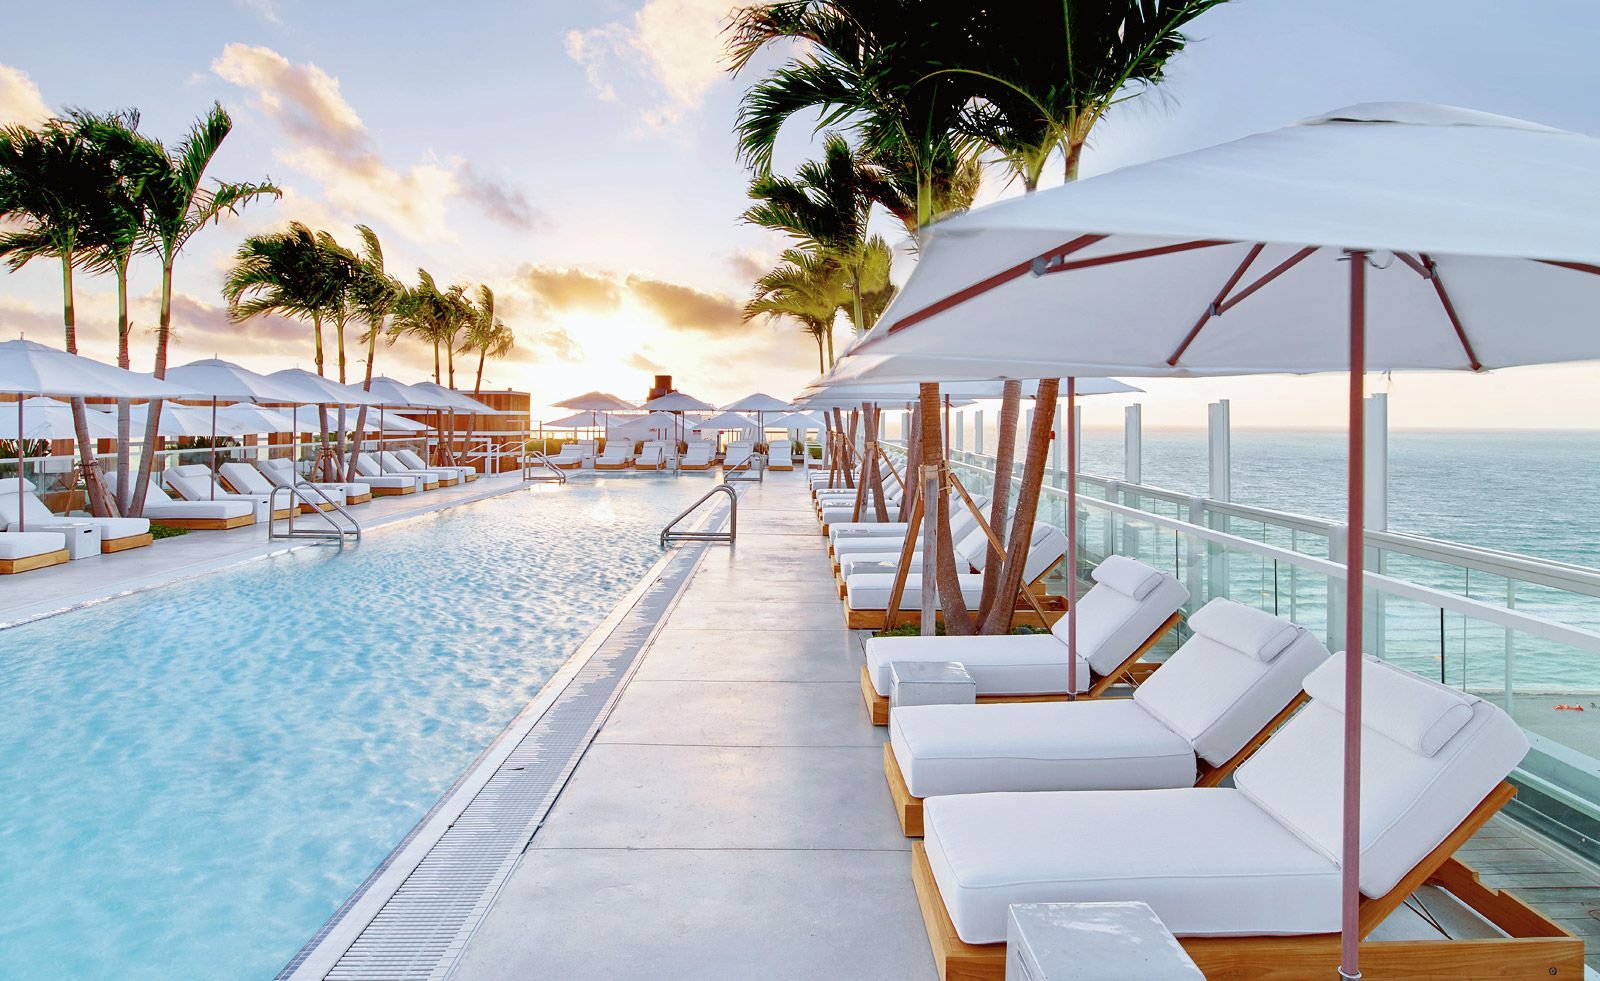 The Miami Rooftop Bars Keeping Us In High Spirits South Beach Hotels Miami Hotels South Beach Best Hotels In Miami